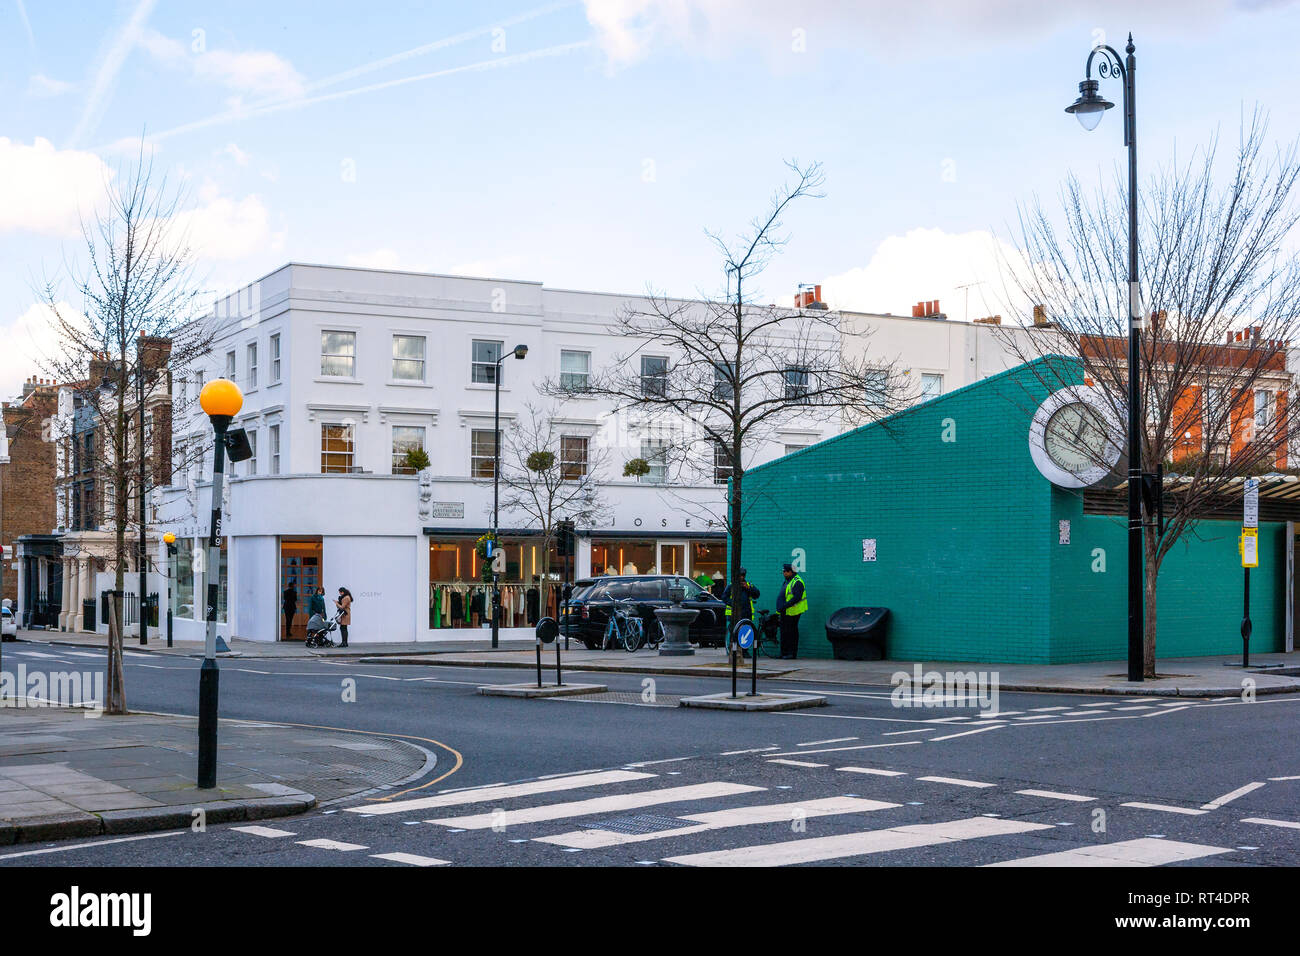 Westbourne Grove, Notting Hill, London - Stock Image